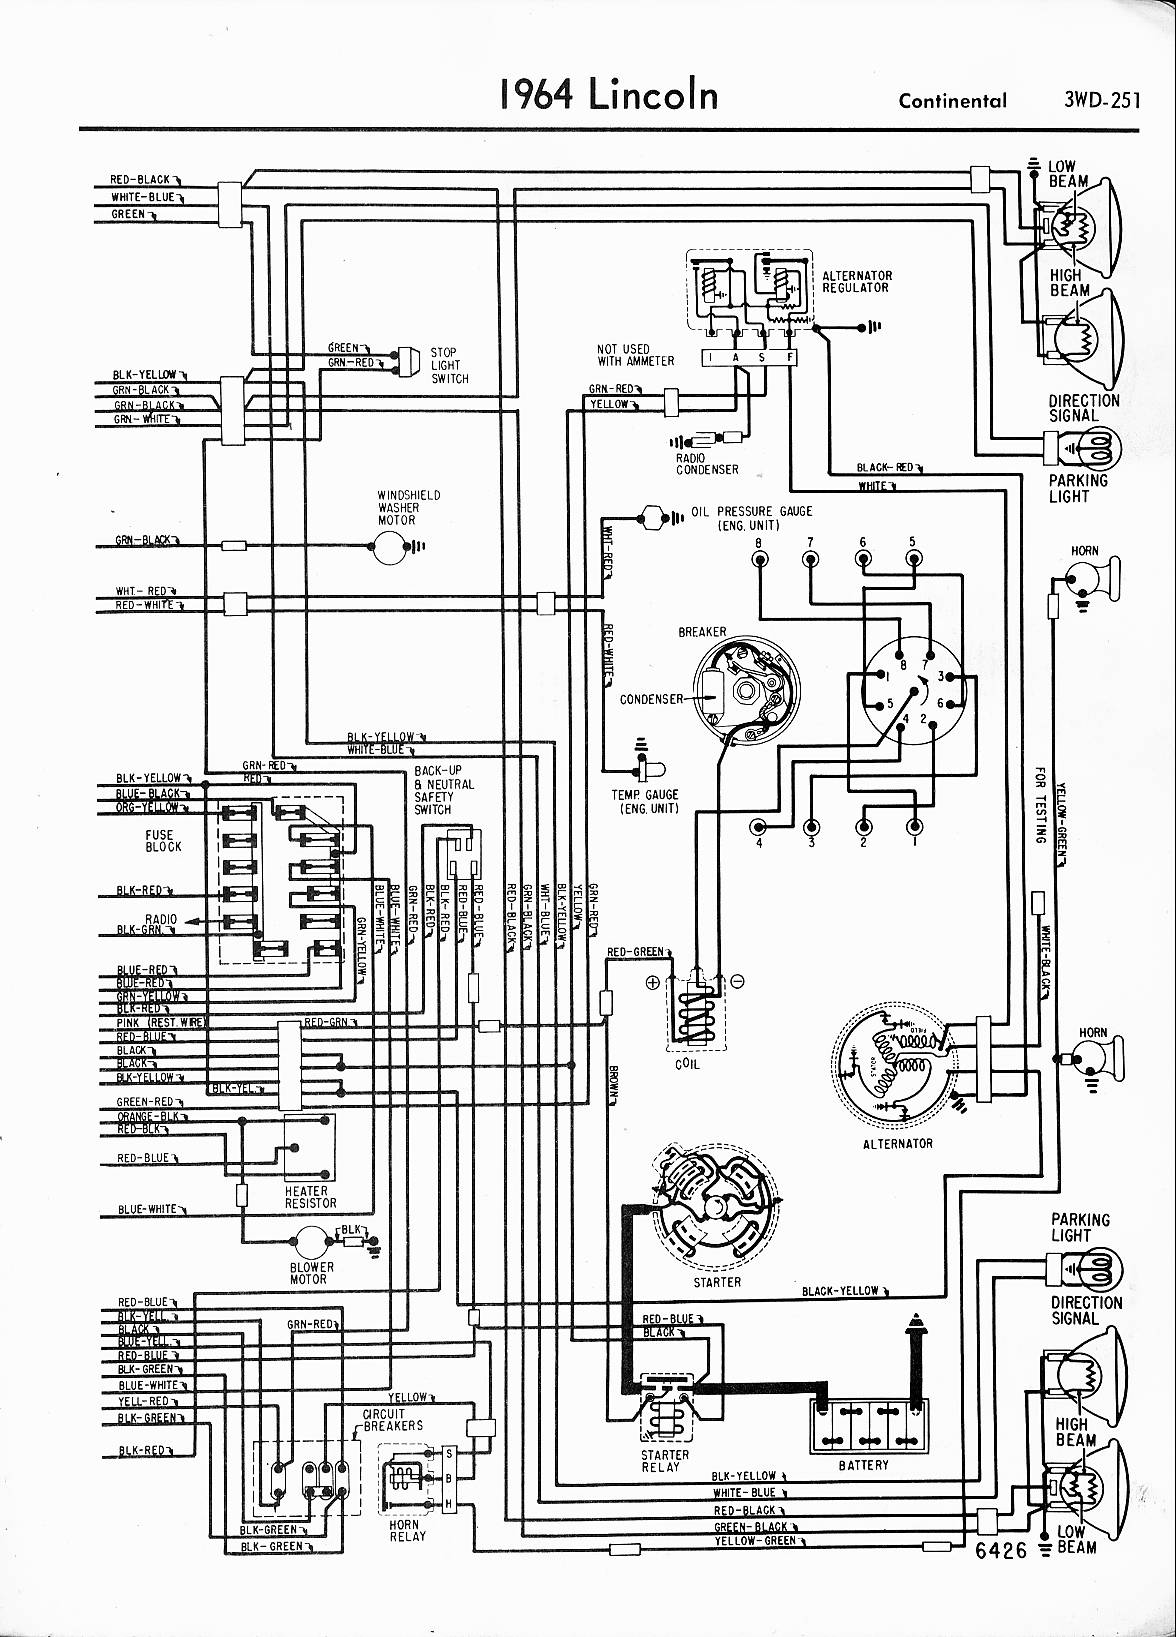 1969 ford lincoln wiring diagrams free lincoln wiring diagrams: 1957 - 1965 1972 lincoln wiring diagrams